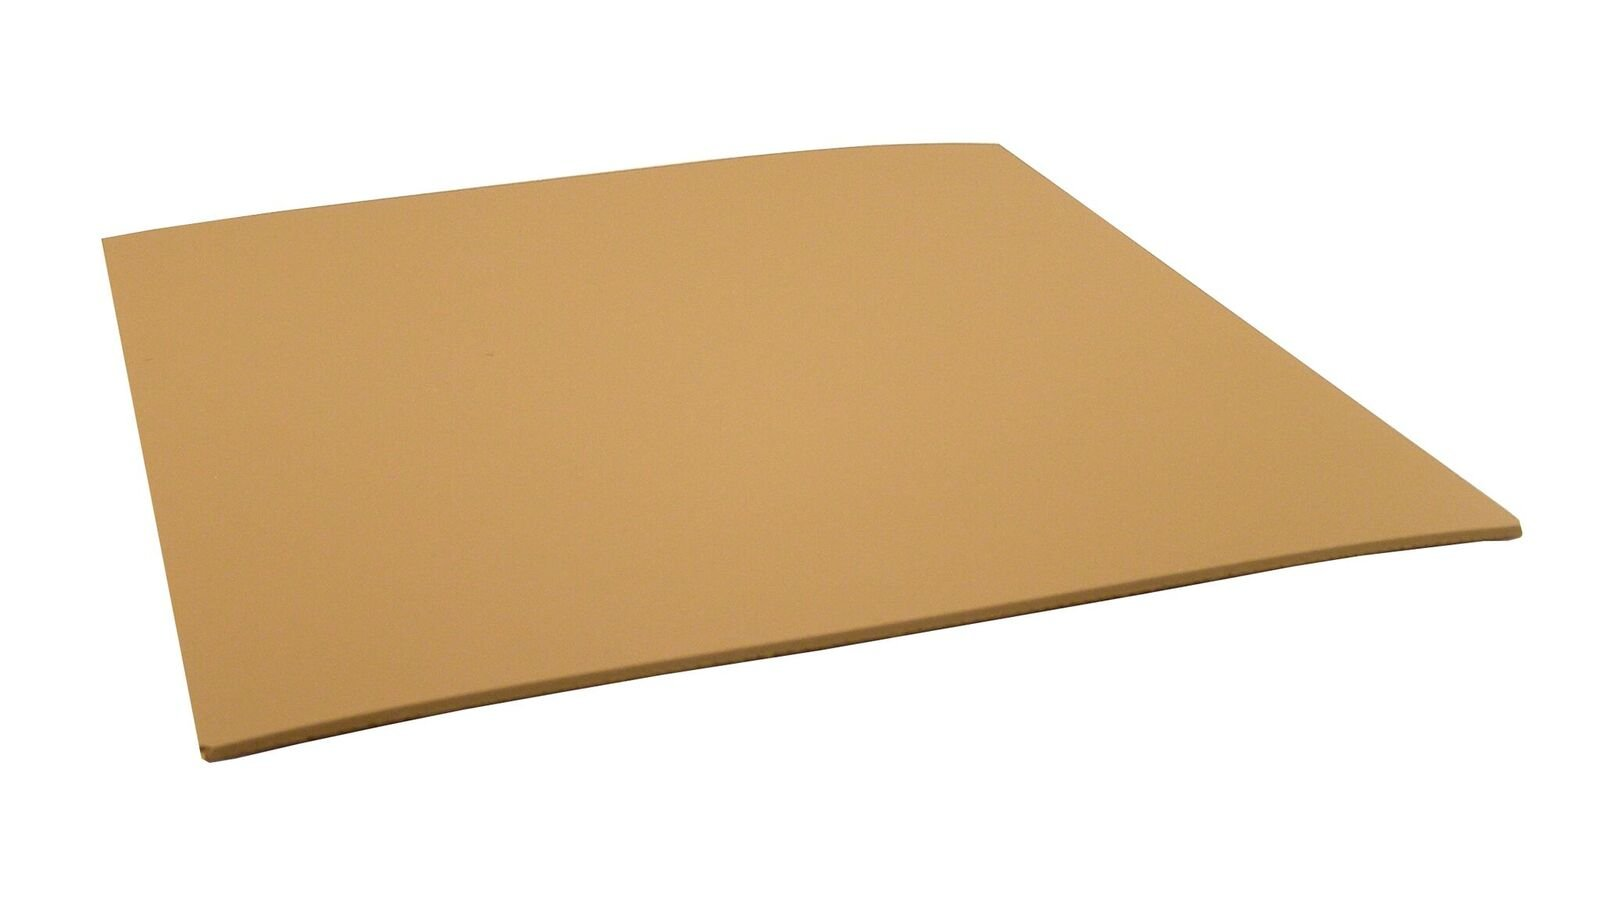 Speedball 4387 Unmounted Linoleum Block - Flat Surface Easy Carving For Block Printing Tan, 18 x 24 Inches by Speedball